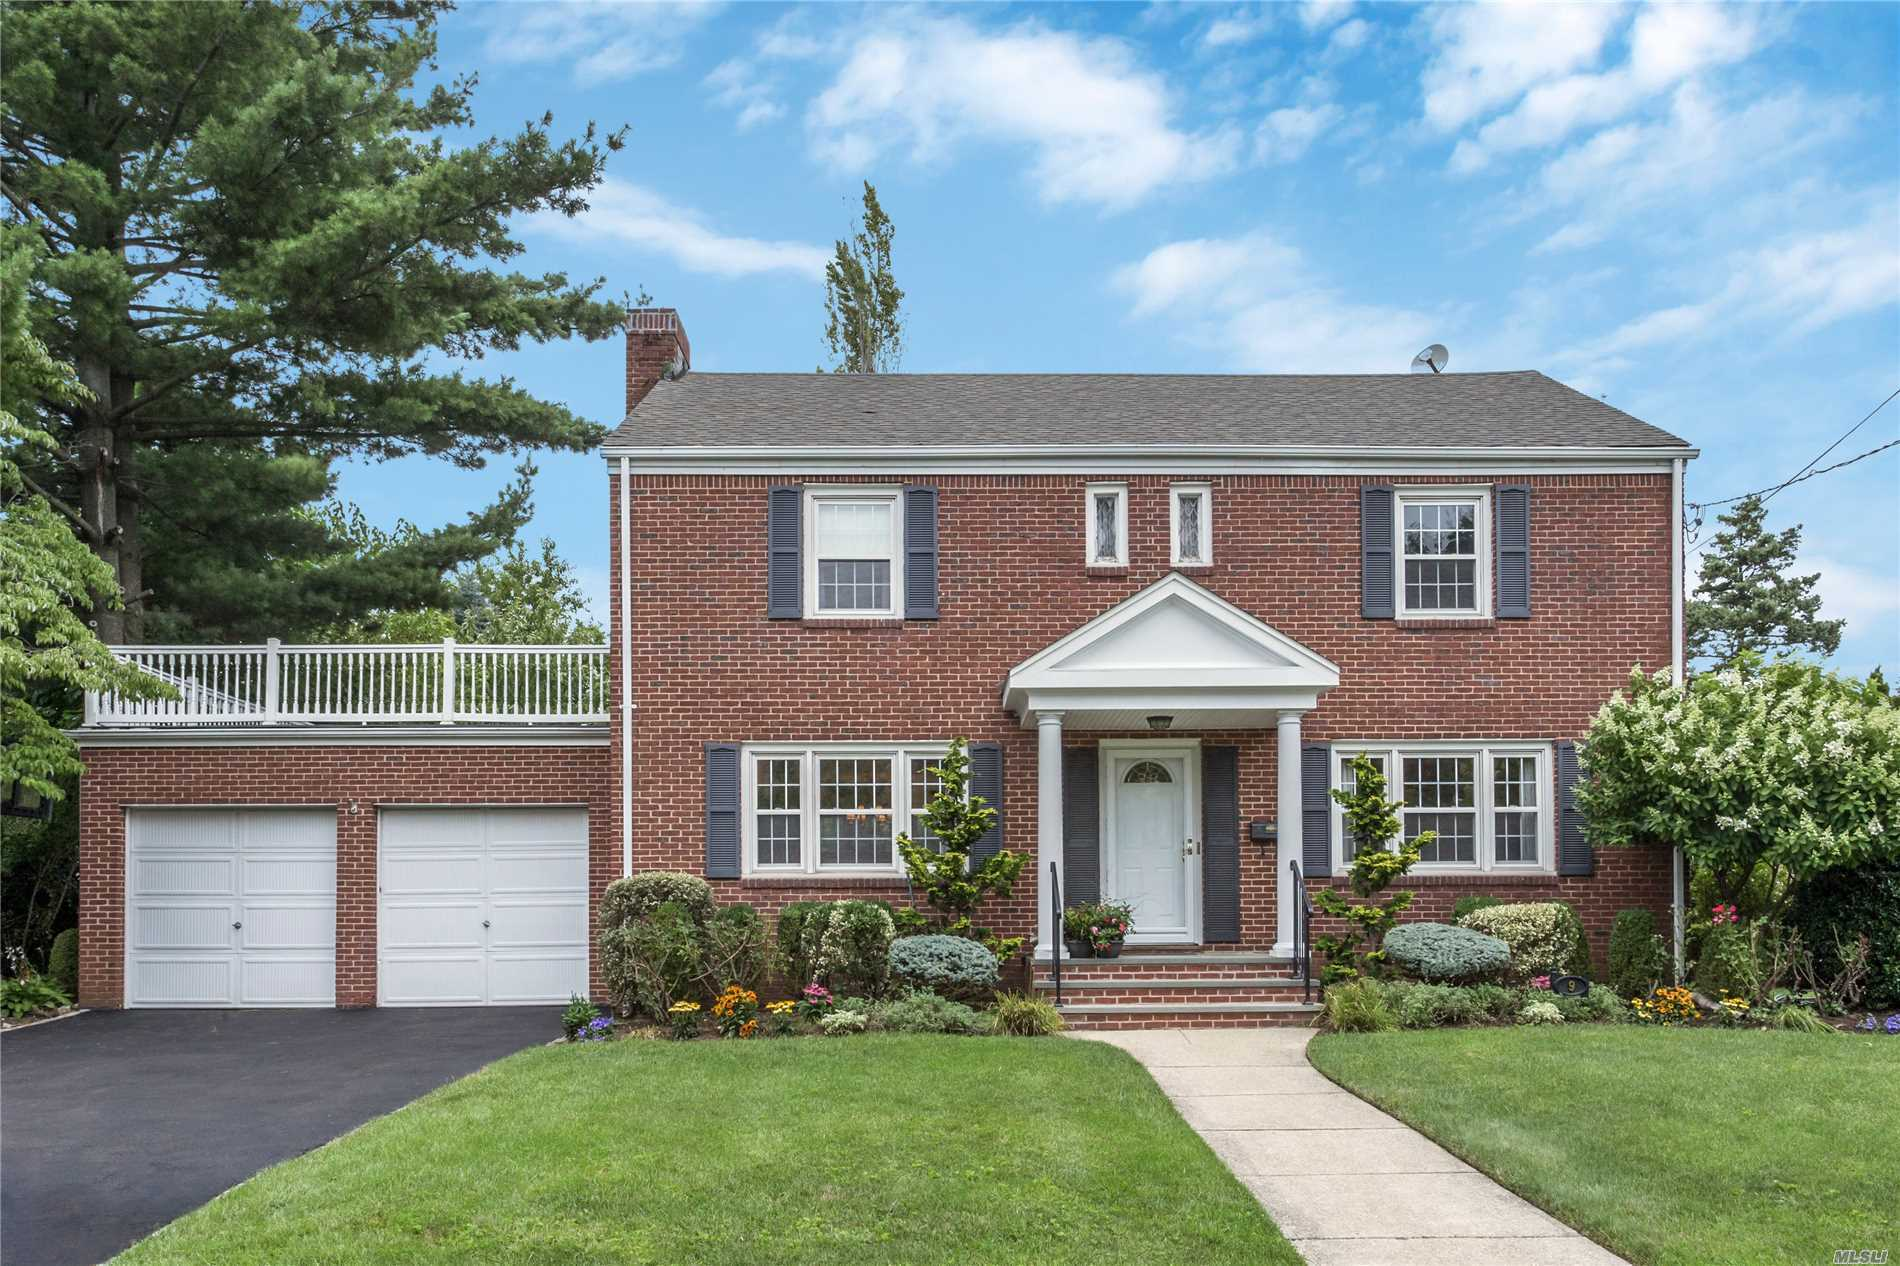 This Updated And Expanded Center Hall Brick/Siding Colonial Located In The Western Section On 80 X 125 Private Property Offers An Open Floor Plan With The Eat-In Kitchen/Family Room/Mudroom And Master Suite You Have Been Waiting For! Featuring @3150Sf Of Well-Designed Space With Large Rooms, This Spacious Home Is In True Move In Condition. 7 Zone Gas Heat, Cac And Attached 2 Car Garage. Convenient To Lirr, St. Anne's & Nhp Rd. Shops And Restaurants. This Isn't Just A Home It Is A Lifestyle!